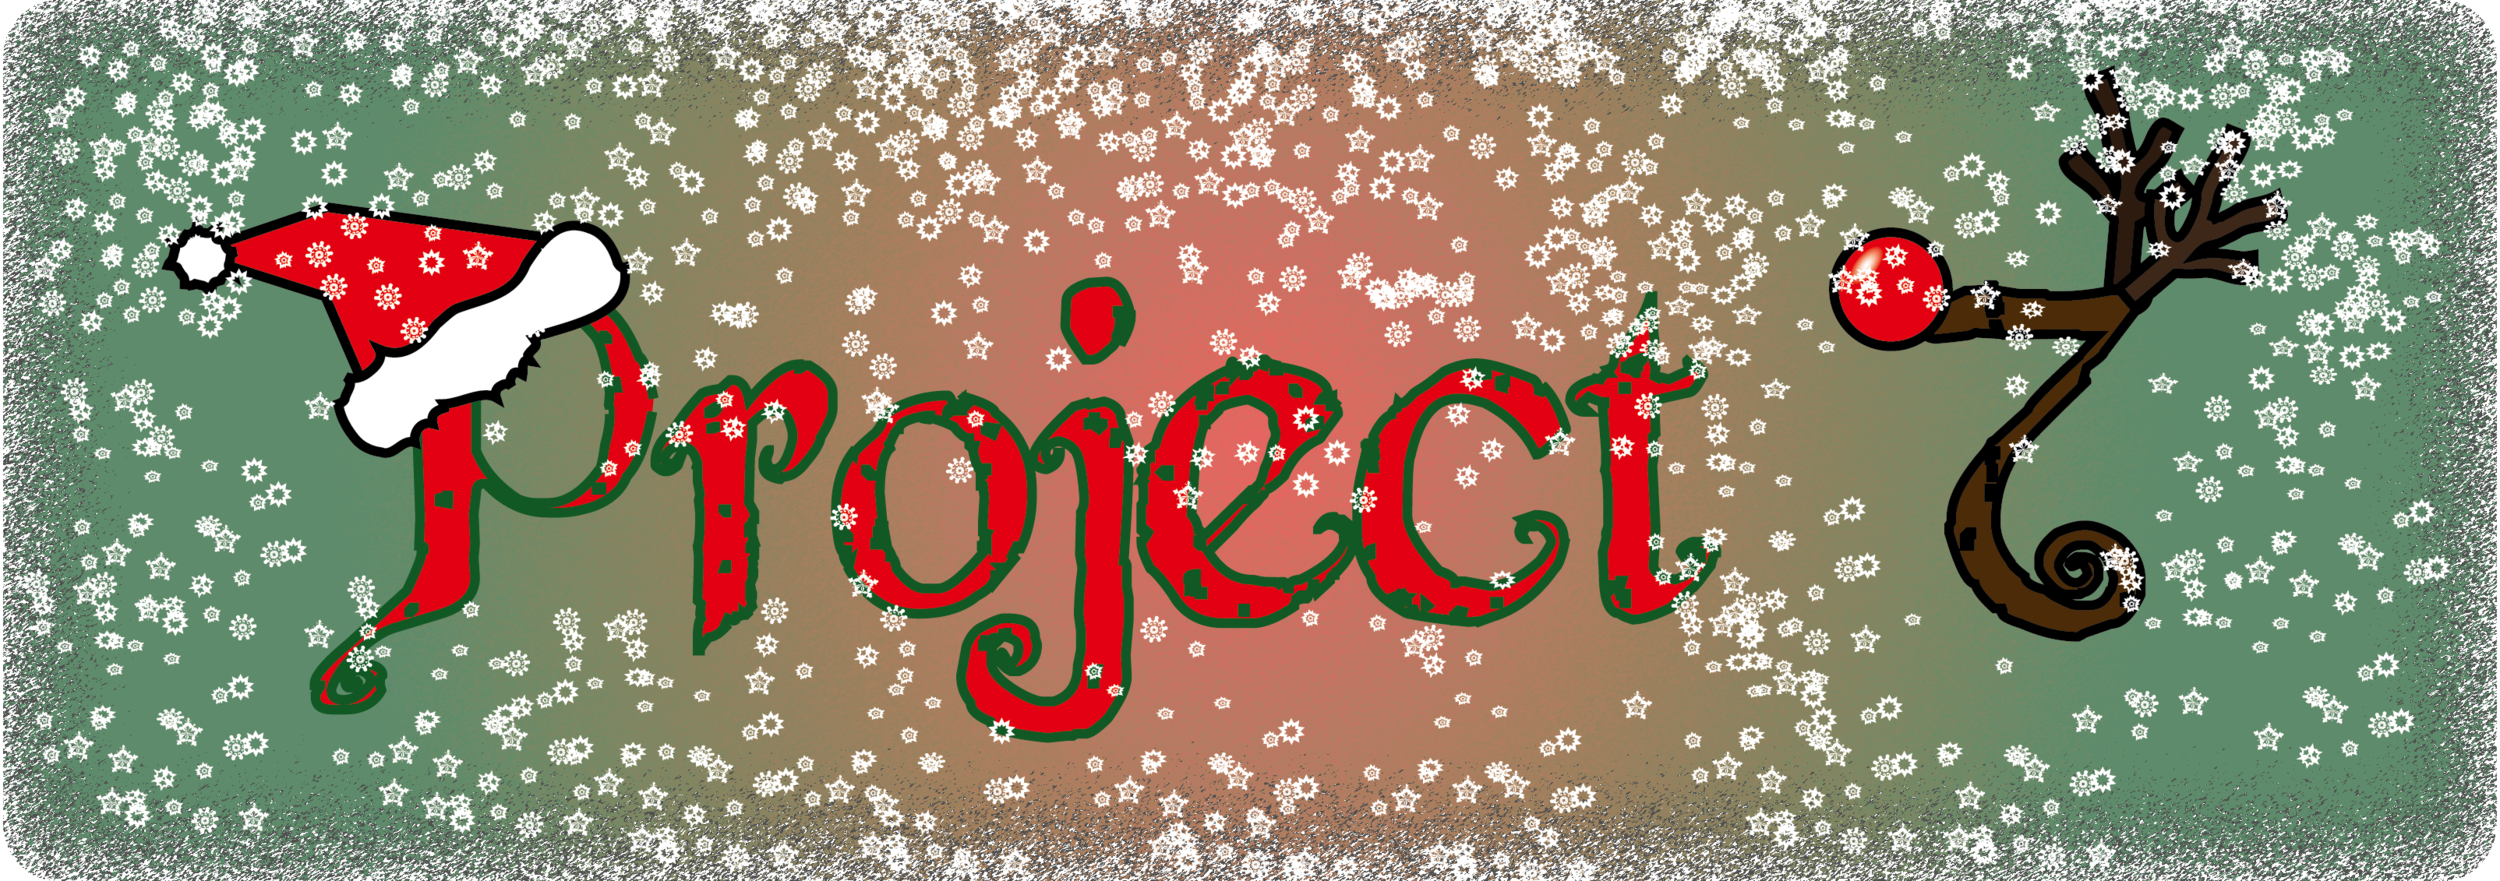 project 7 christmas logo.png